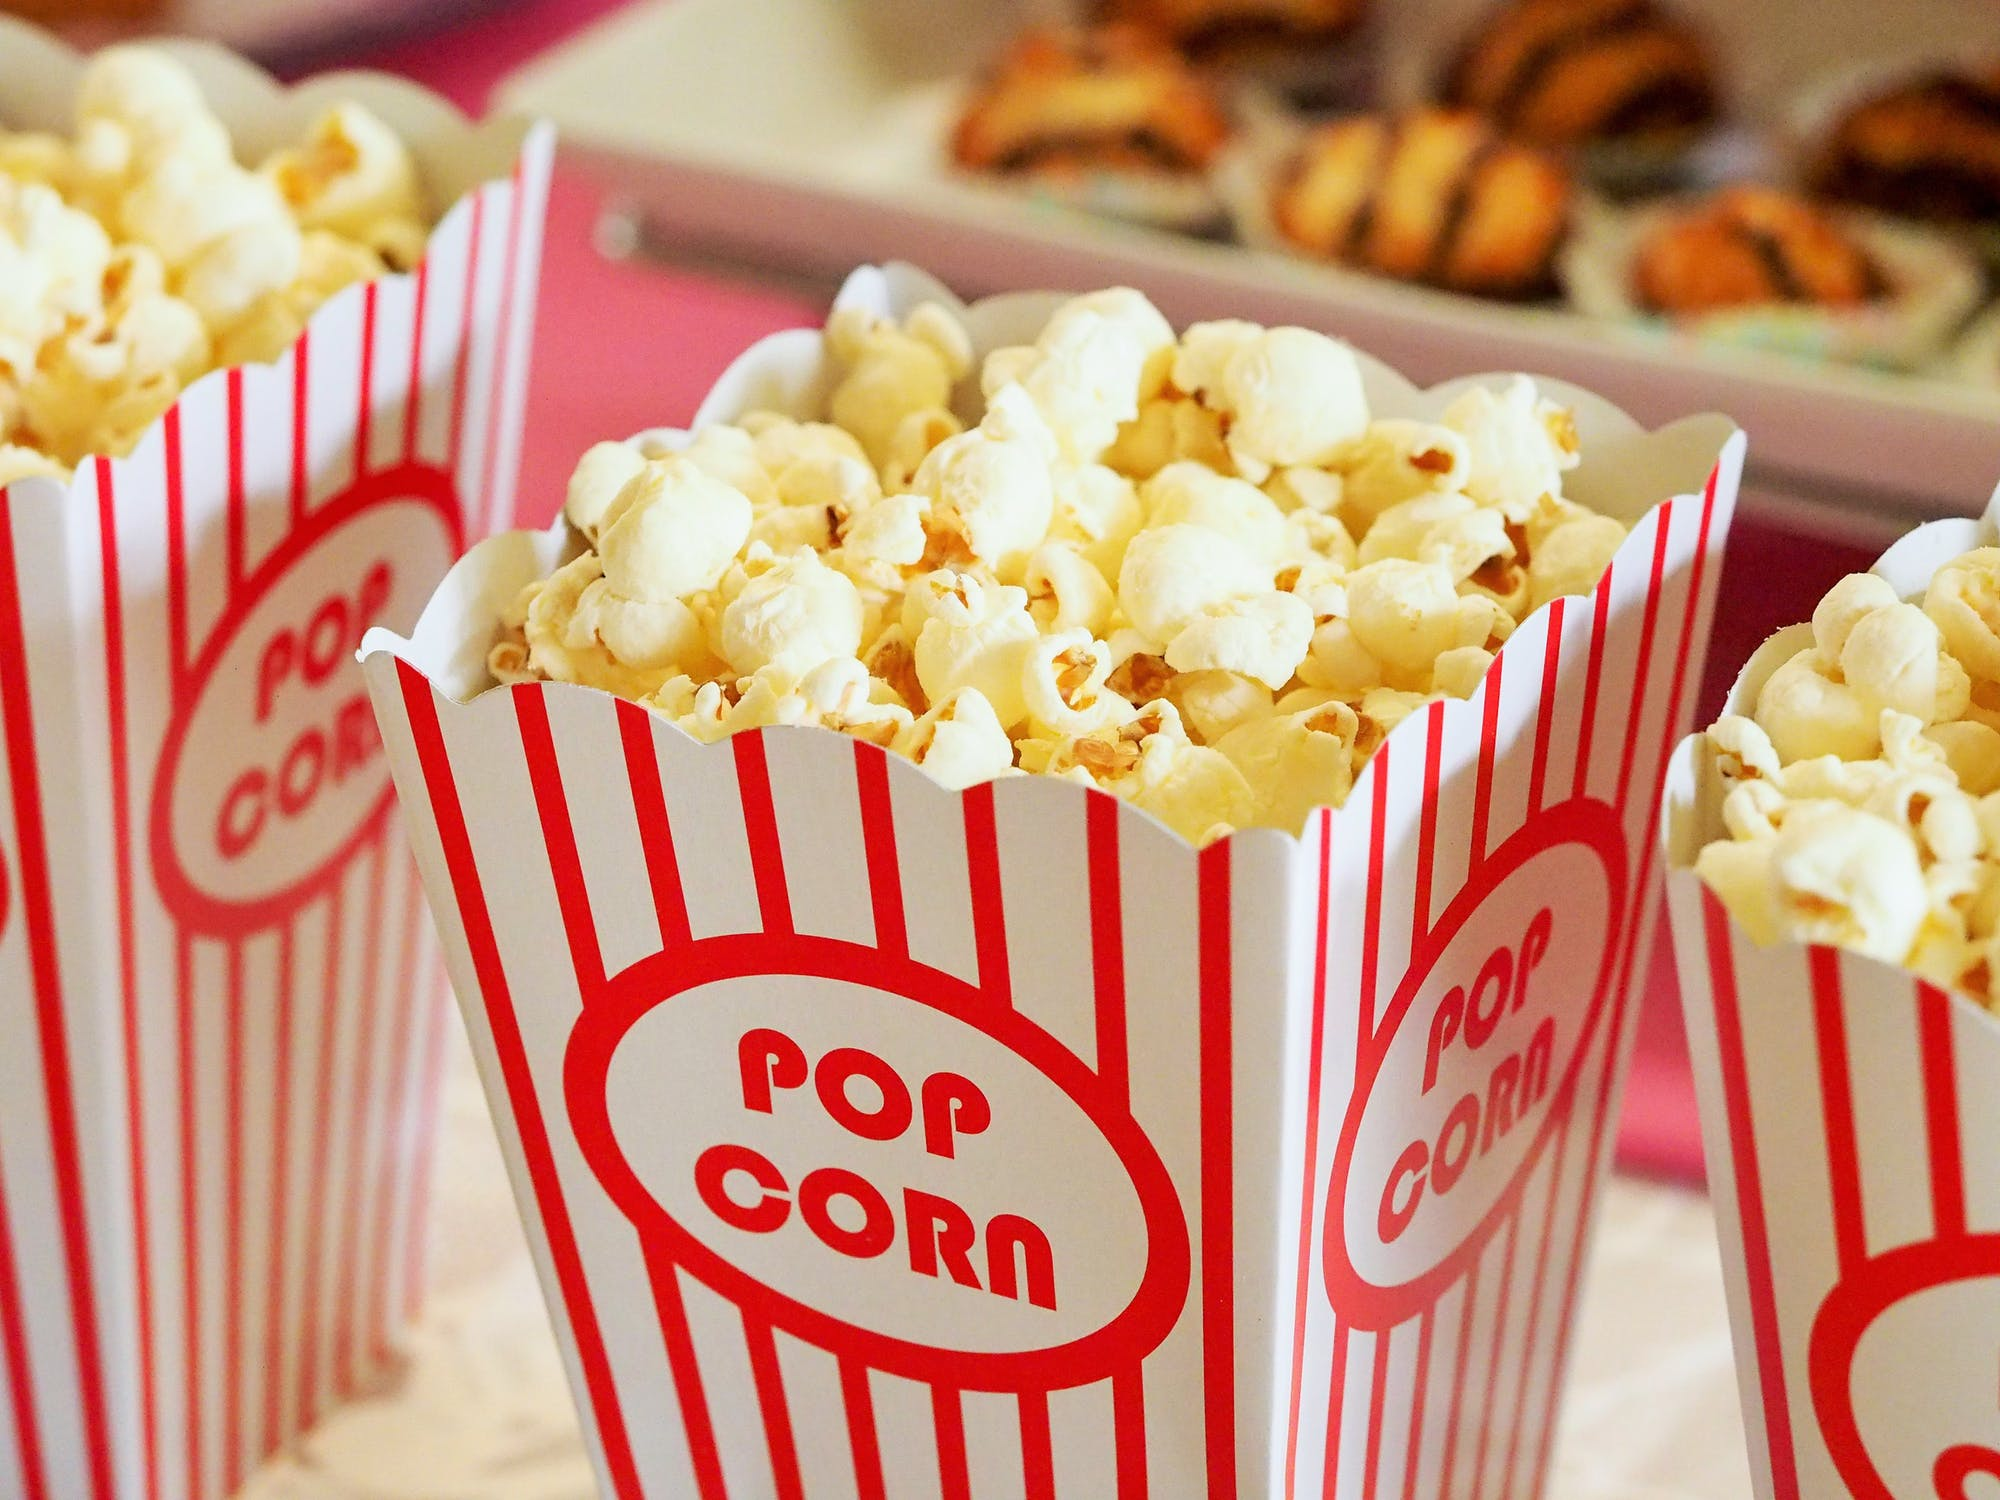 Photograph of movie theater popcorn boxes